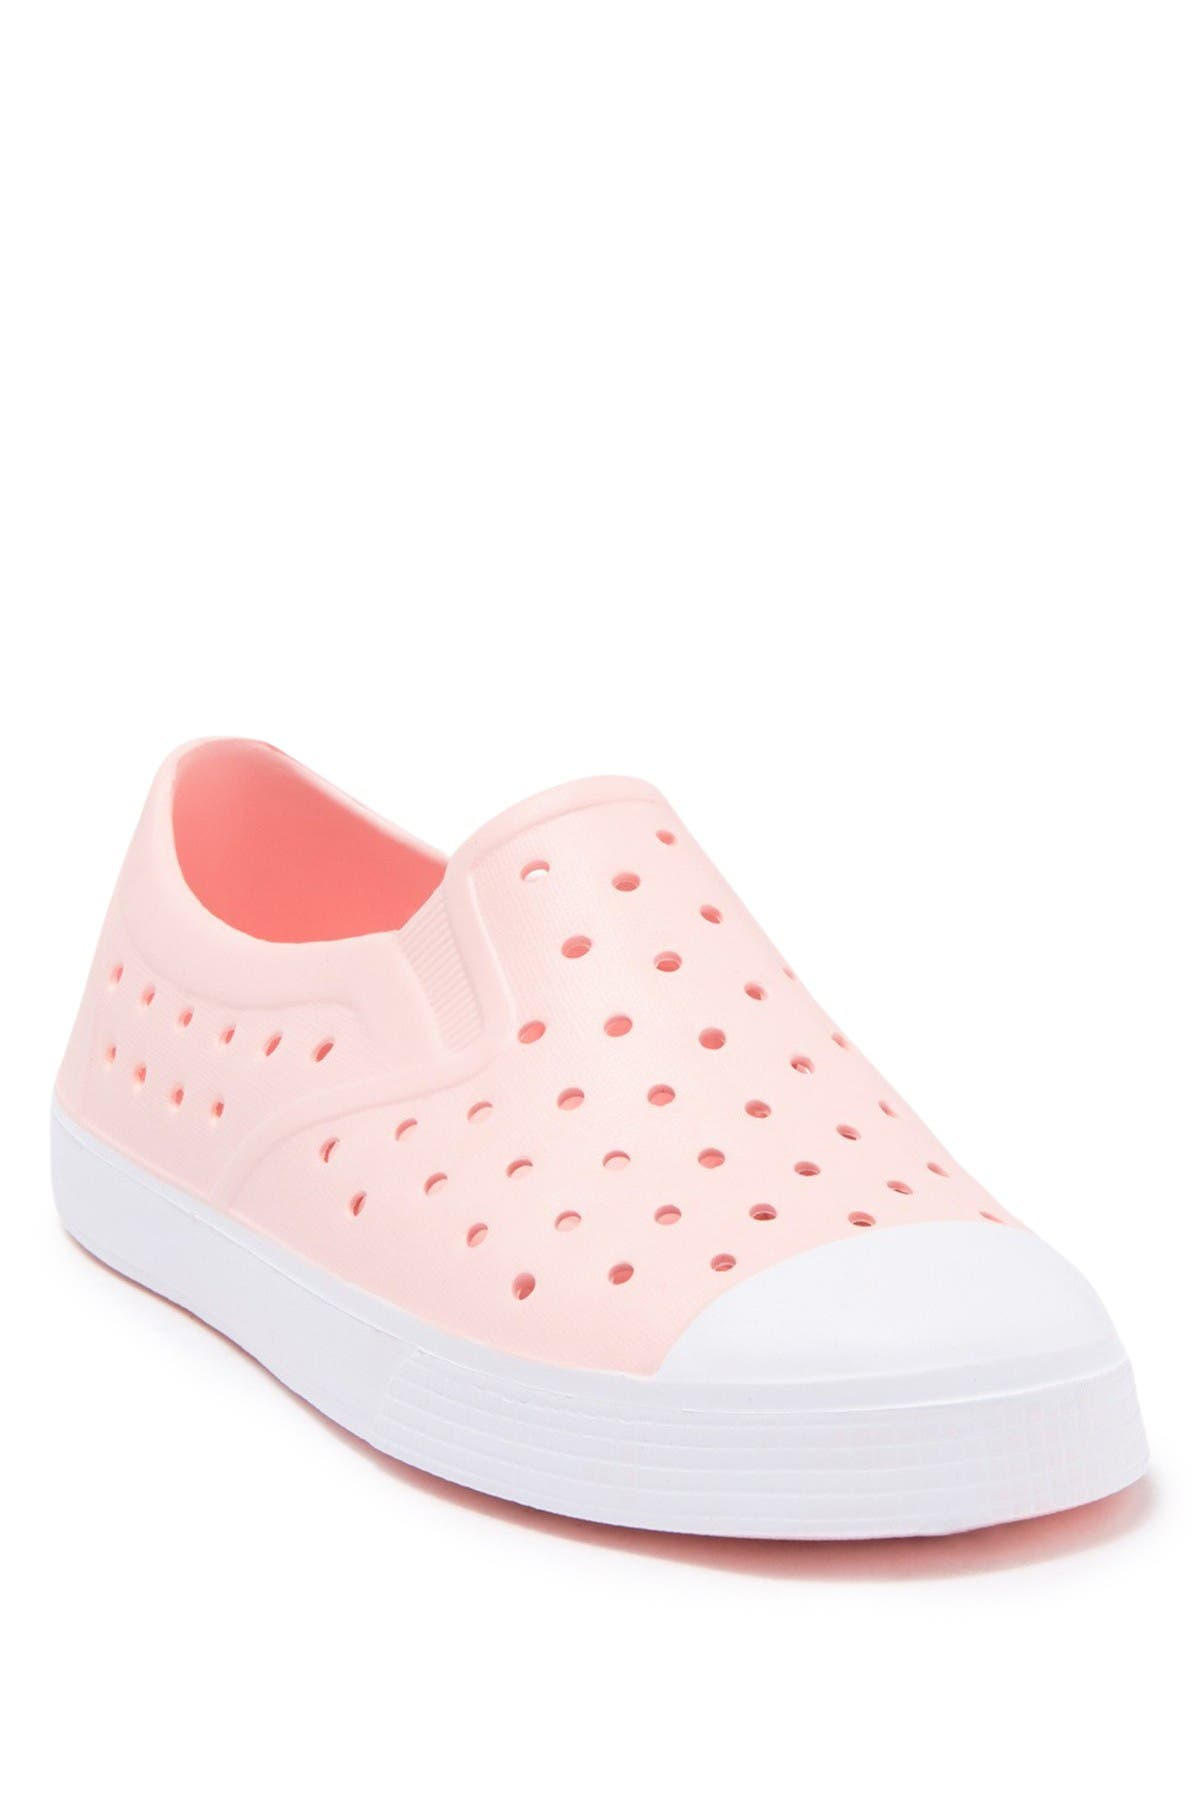 Image of Harper Canyon Surf Perforated Slip-On Sneaker